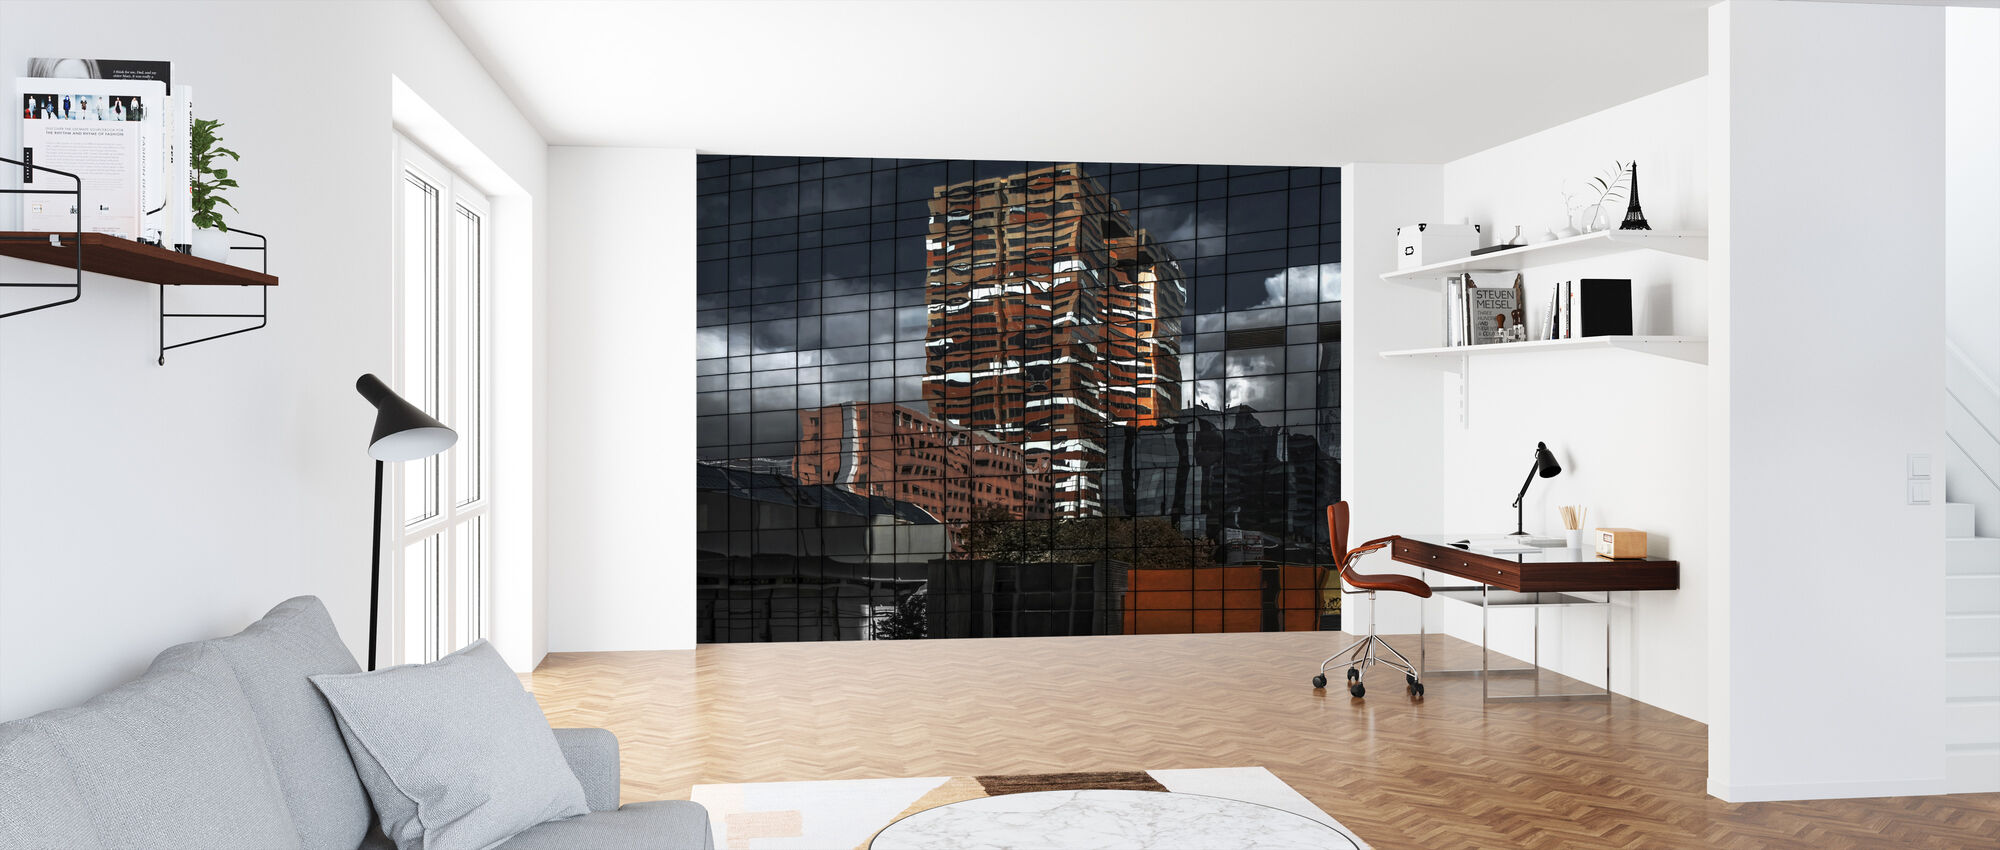 Puzzle Reflection - Wallpaper - Office